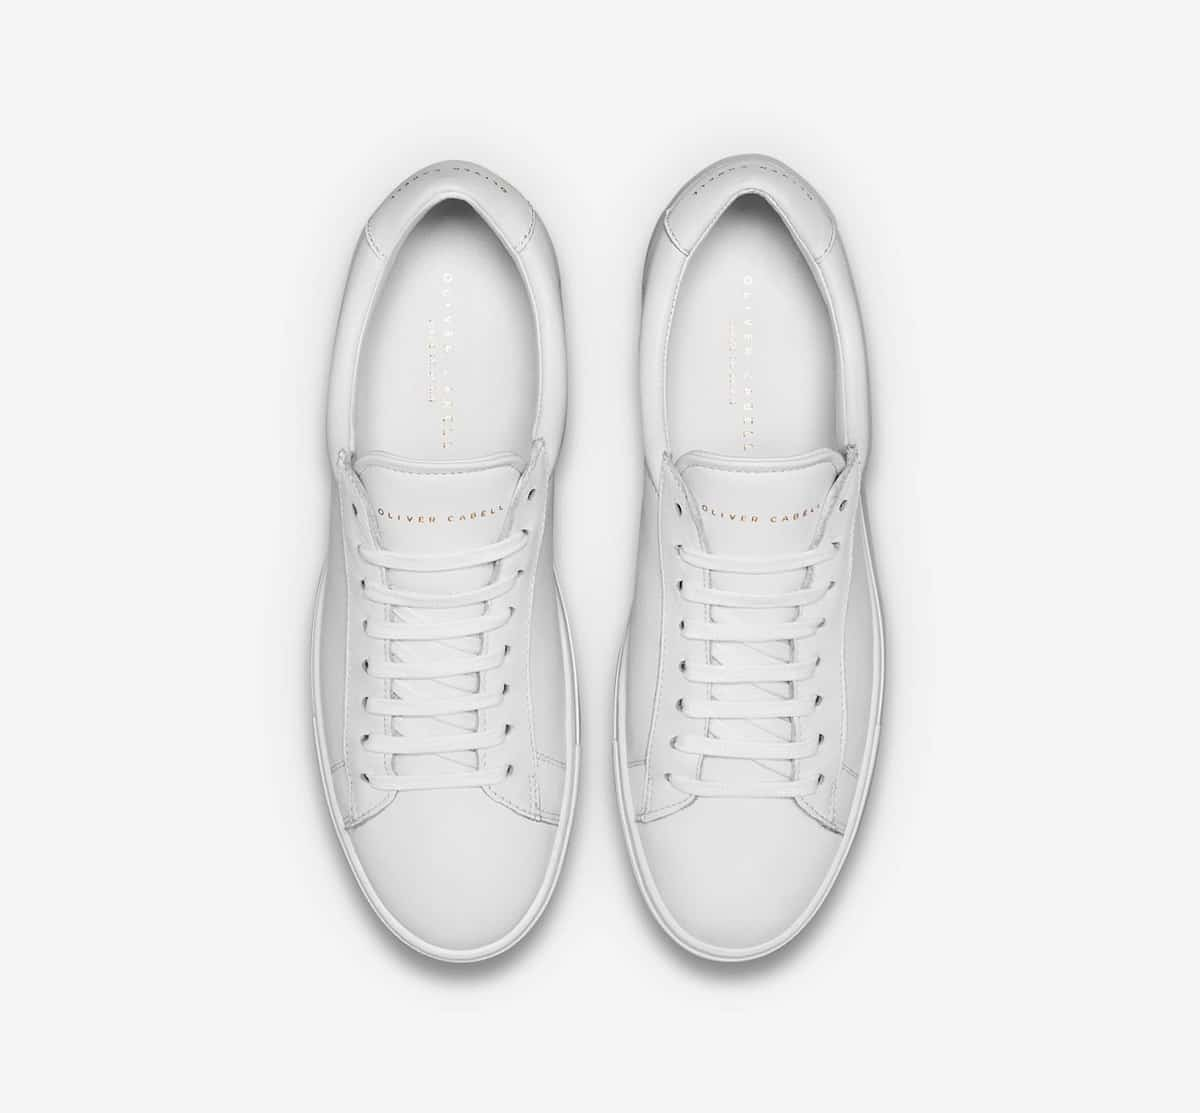 Oliver Cabell Low 1 are some of the finest pair of white sneakers you could own.